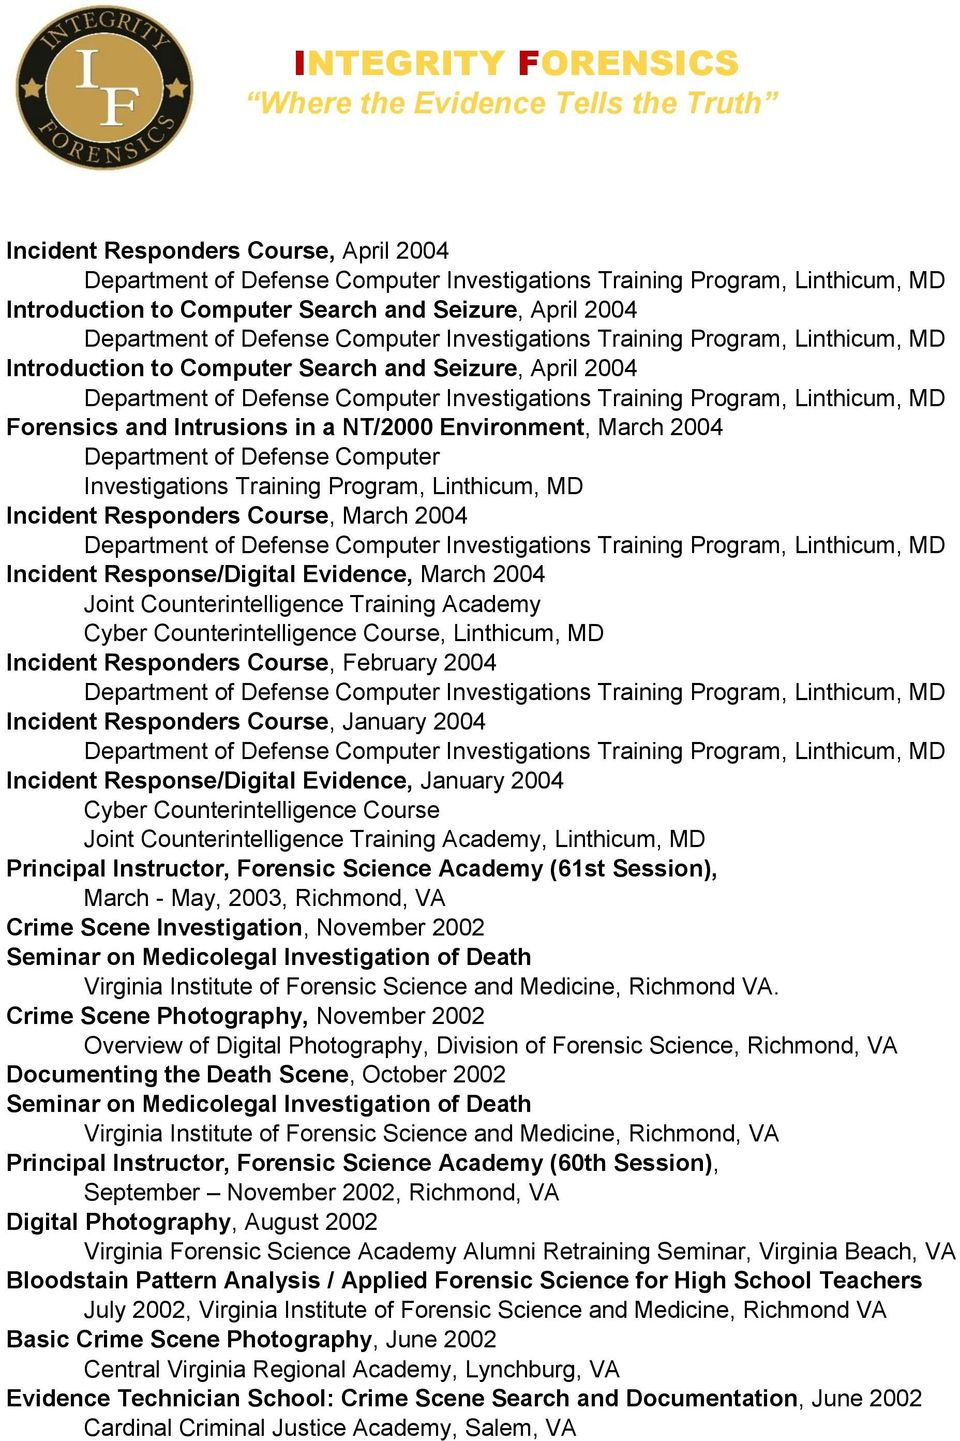 Counterintelligence Training Academy Cyber Counterintelligence Course, Linthicum, MD Incident Responders Course, February 2004 Incident Responders Course, January 2004 Incident Response/Digital